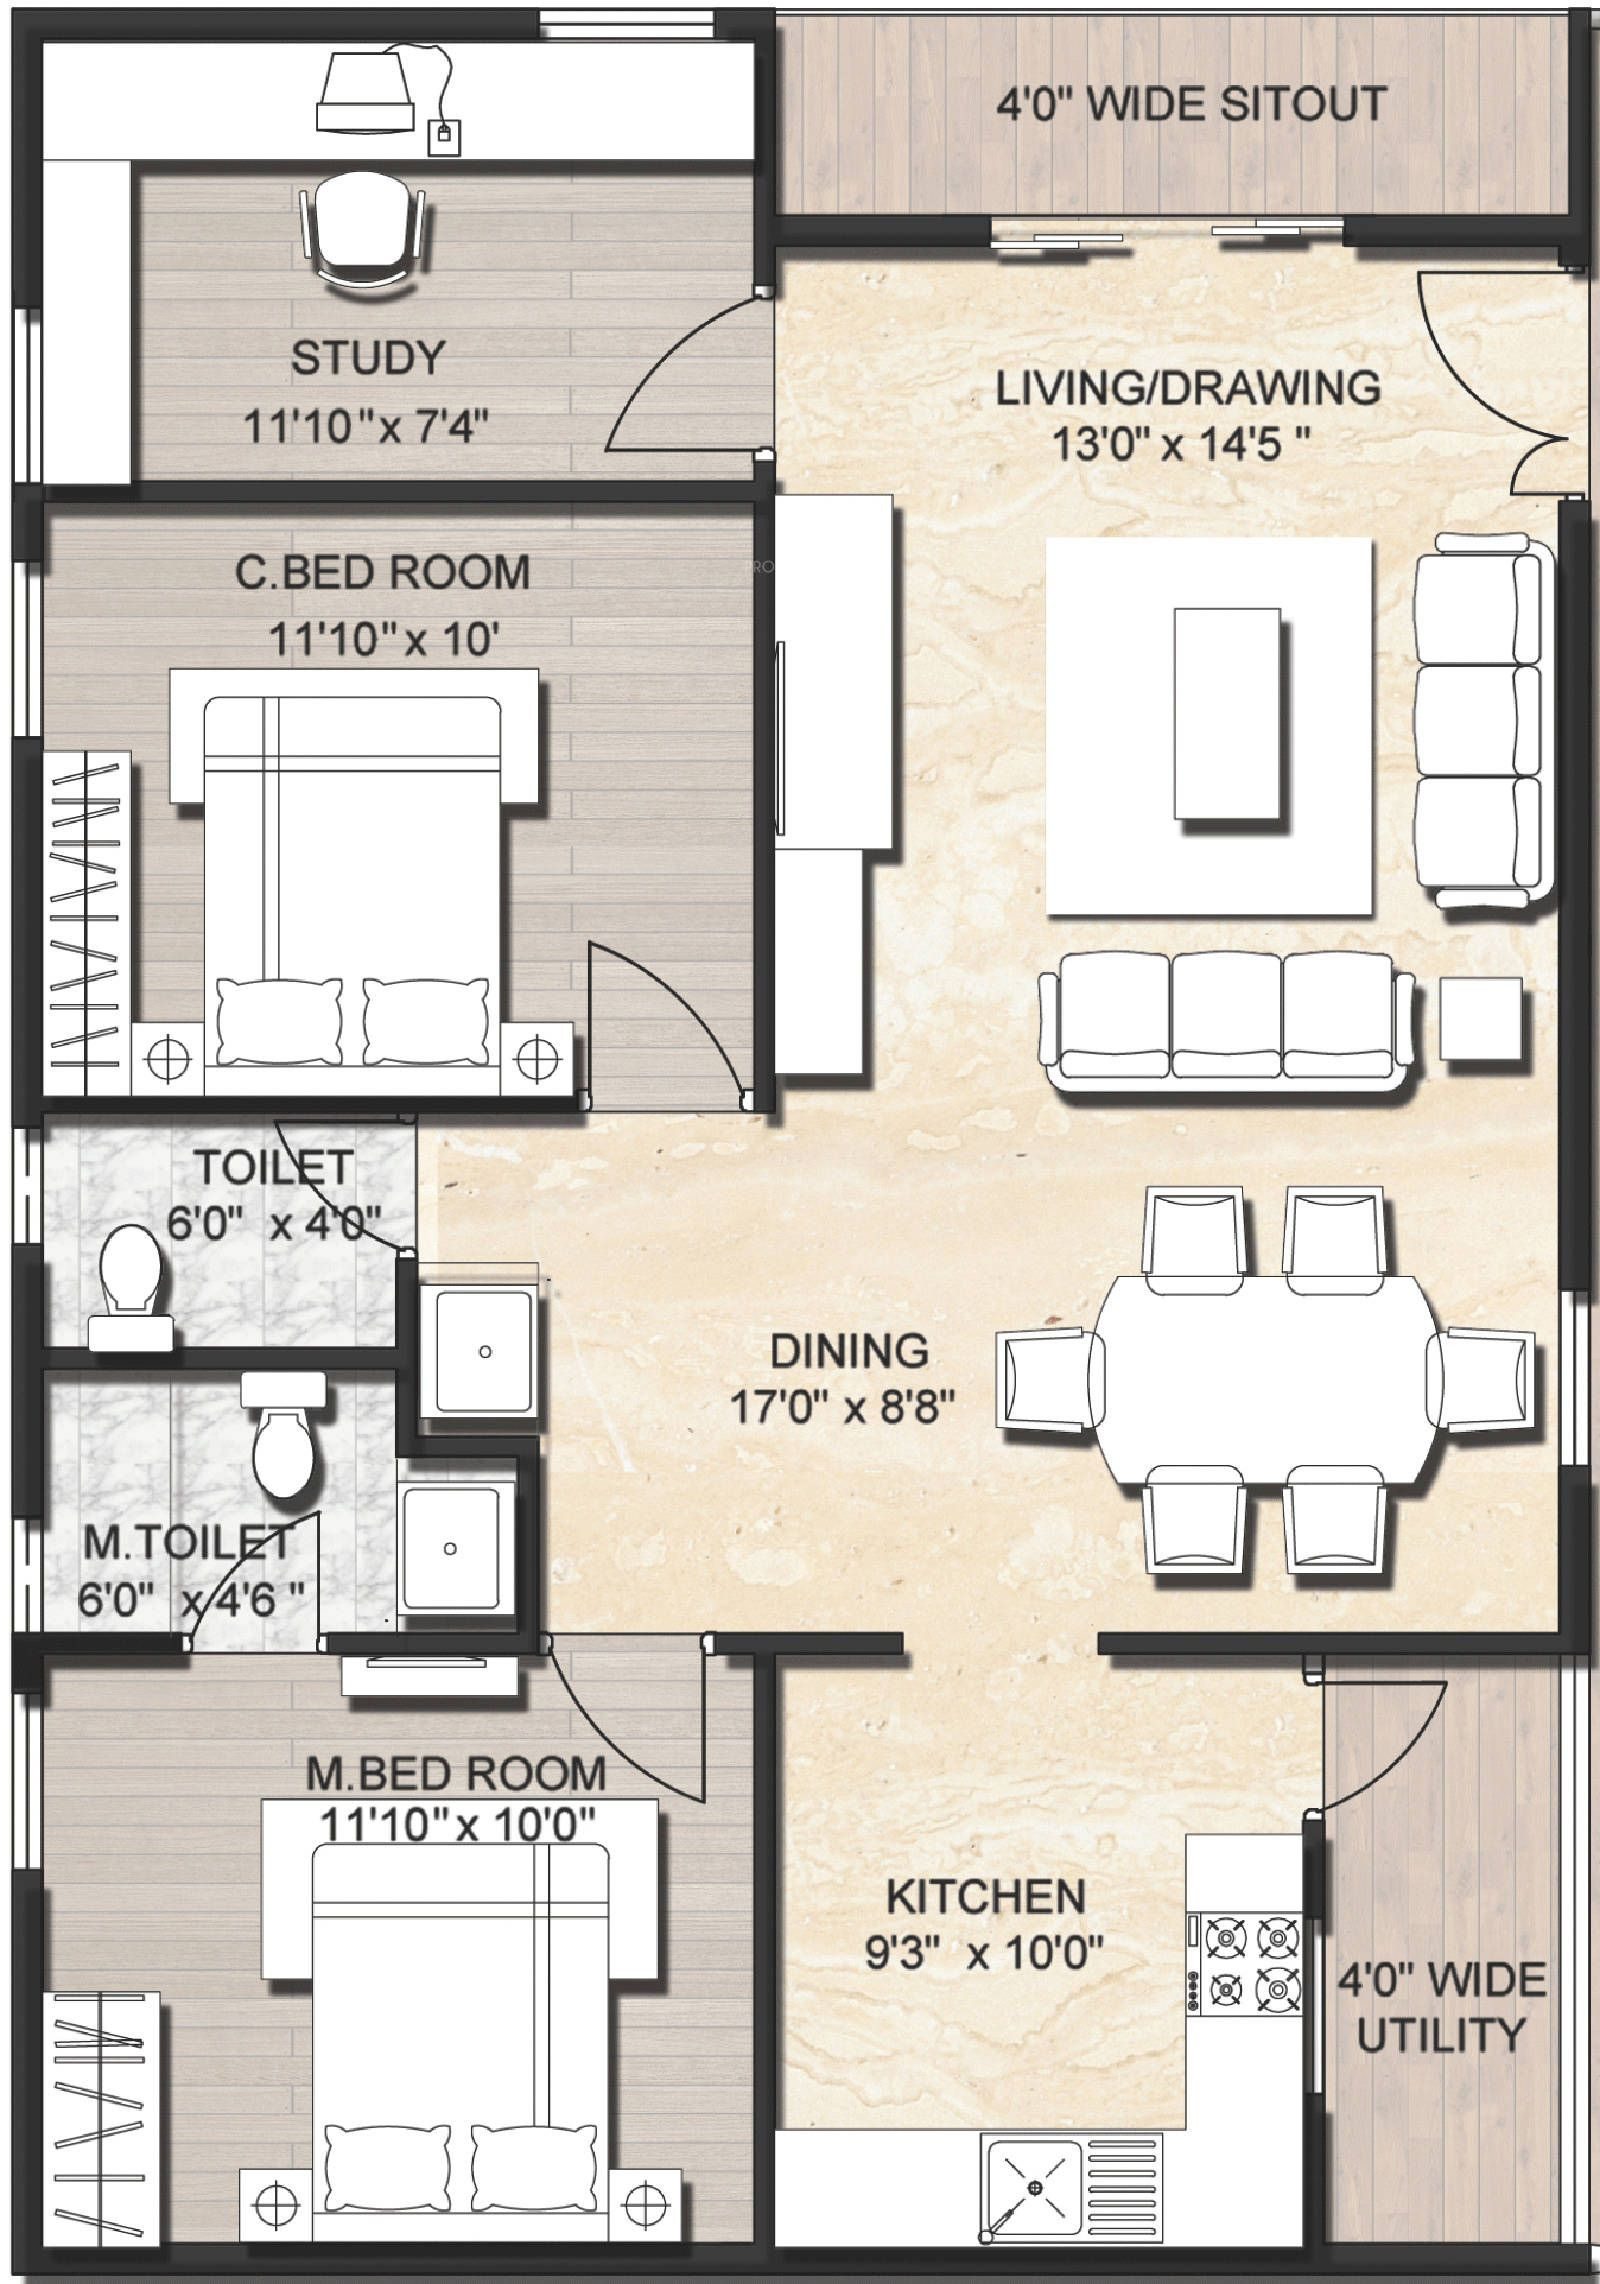 Best House Plans 2017 New 1000 Sq Ft House Plans with Car Parking 2017 Including